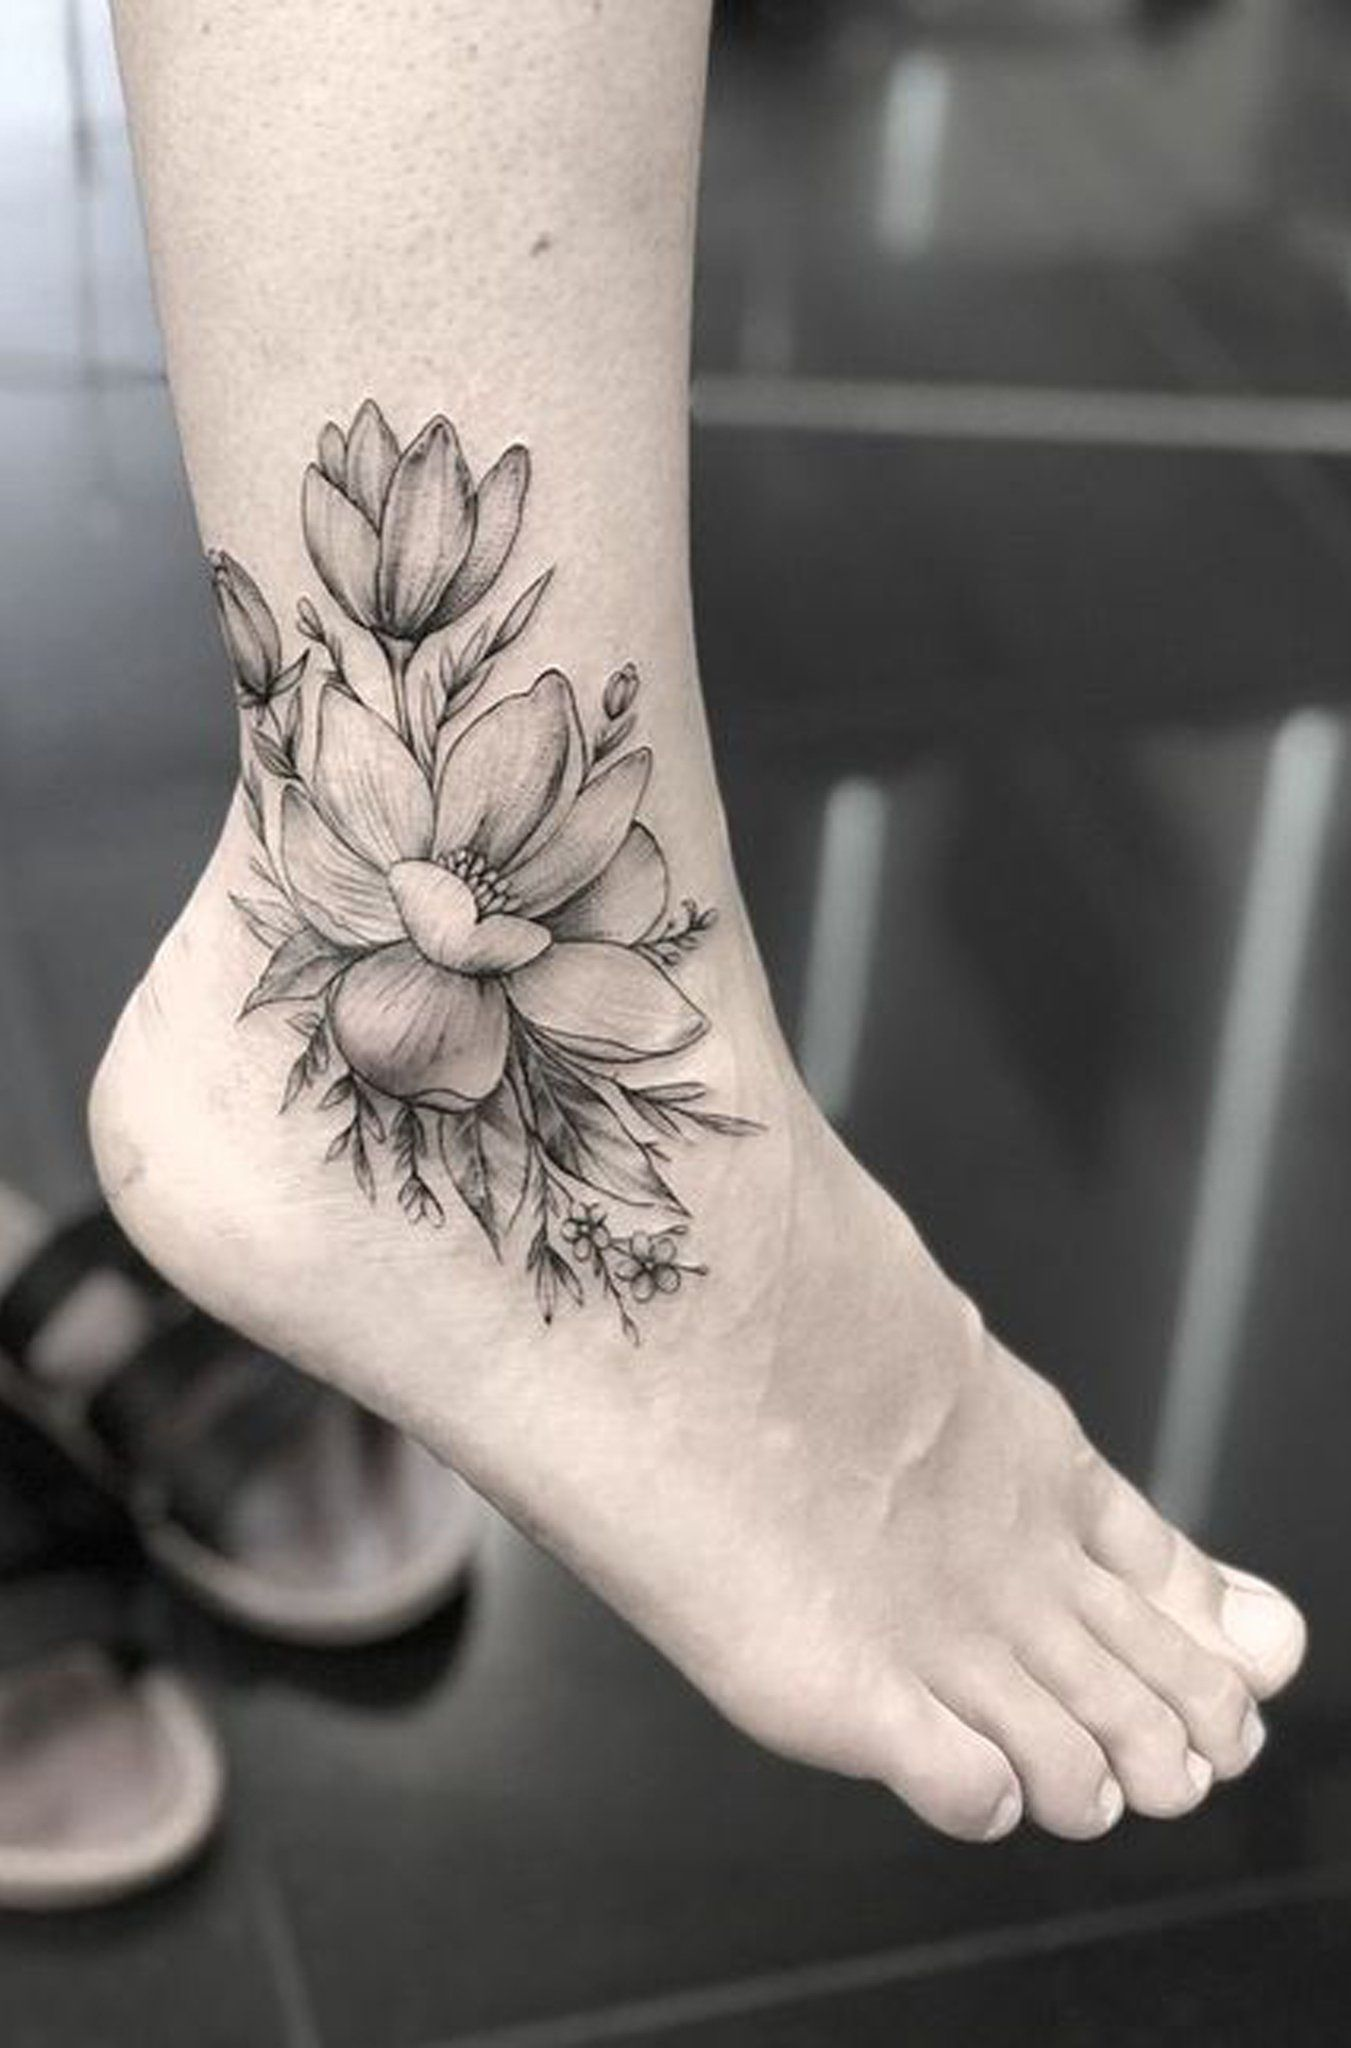 150 Popular Foot Tattoos To Express Your Personality(2020)